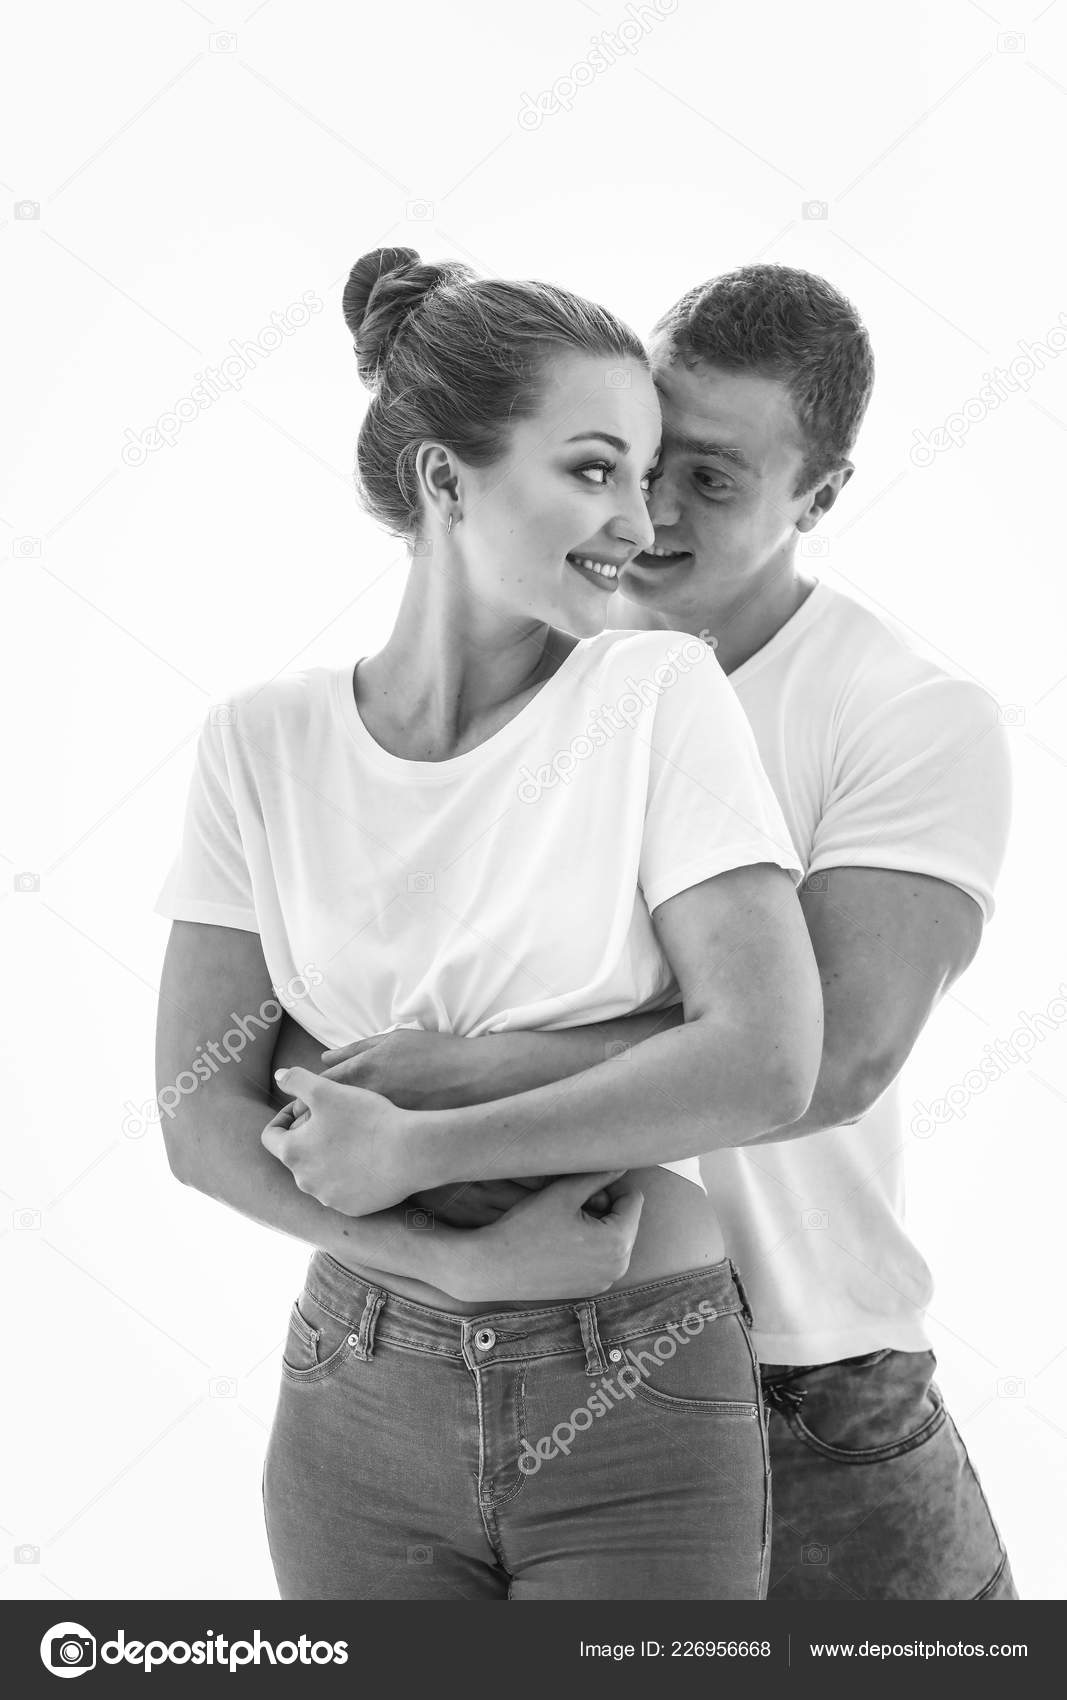 Best Sex Art Romantic Couple